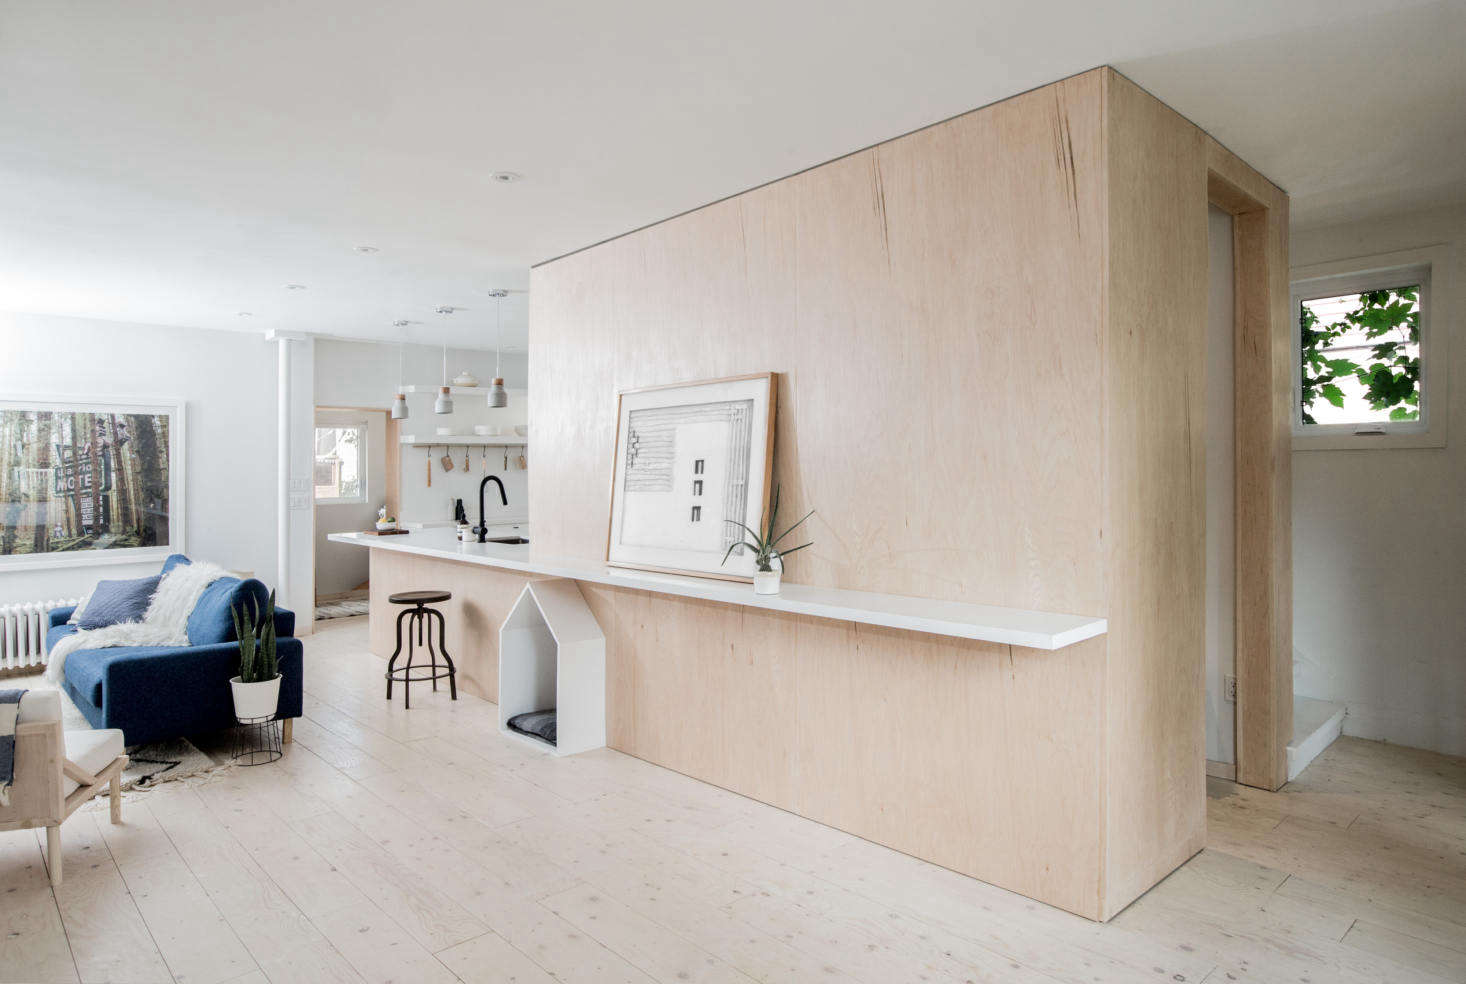 The kitchen is integrated into a floor-to-ceiling birch plywood structure that also contains a foyer, closet, and stairs.The wide-plank floor is lightened plywood sealed with a matte polyurethane.